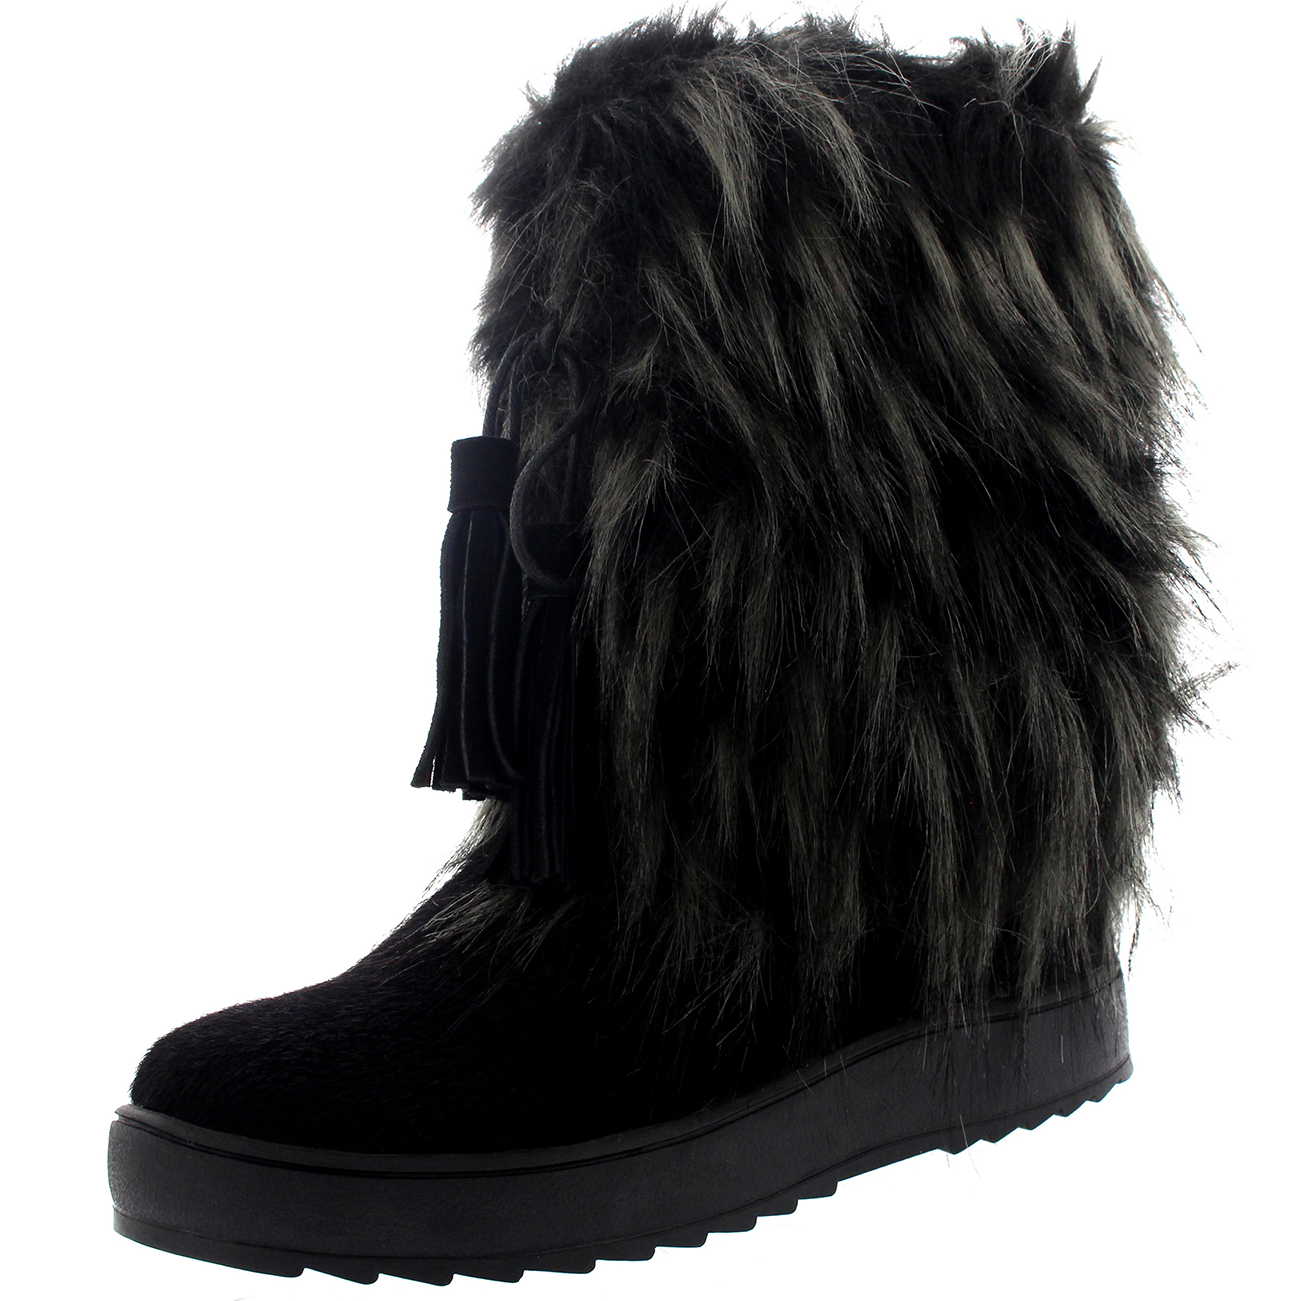 womens yeti eskimo snow fur winter waterproof fashion mid calf boots uk 3 10 ebay